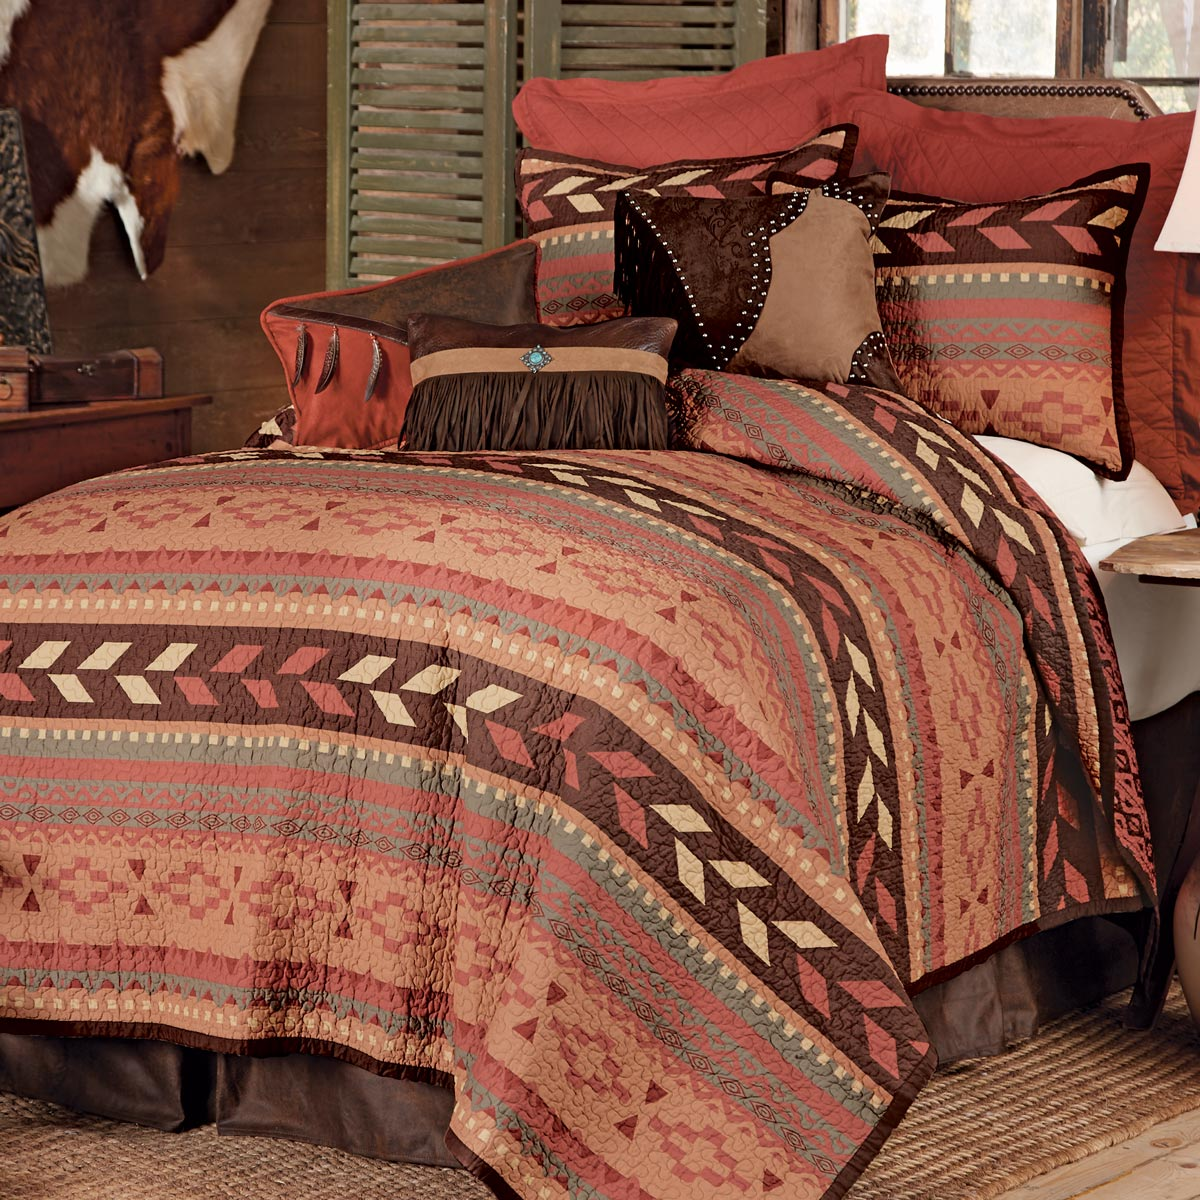 Broken Arrow Quilt Bed Set - Full/Queen